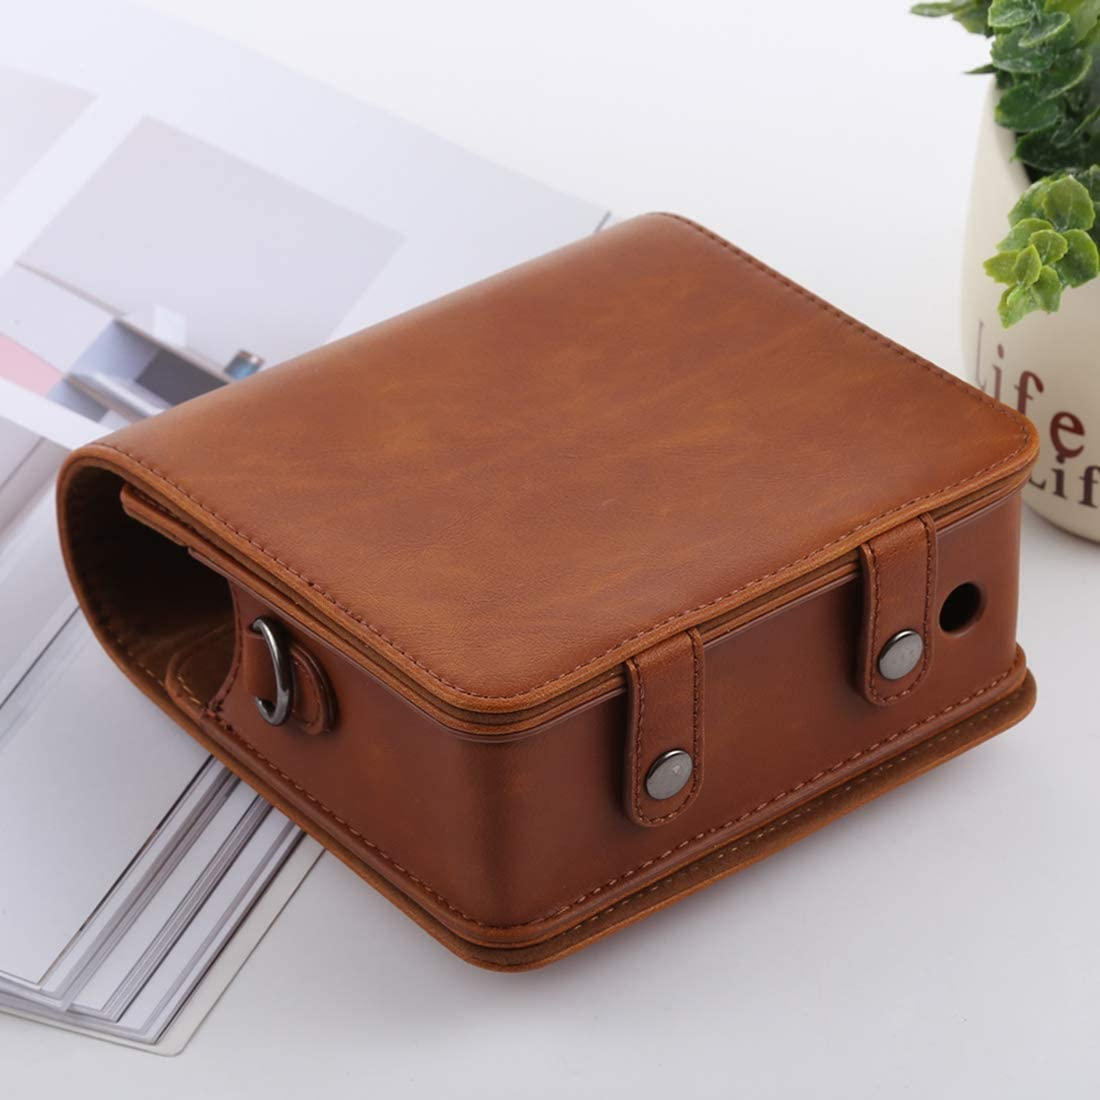 Color : Brown Retro Style Full Body Camera PU Leather Case Bag with Strap for FUJIFILM instax Square SQ6 Durable